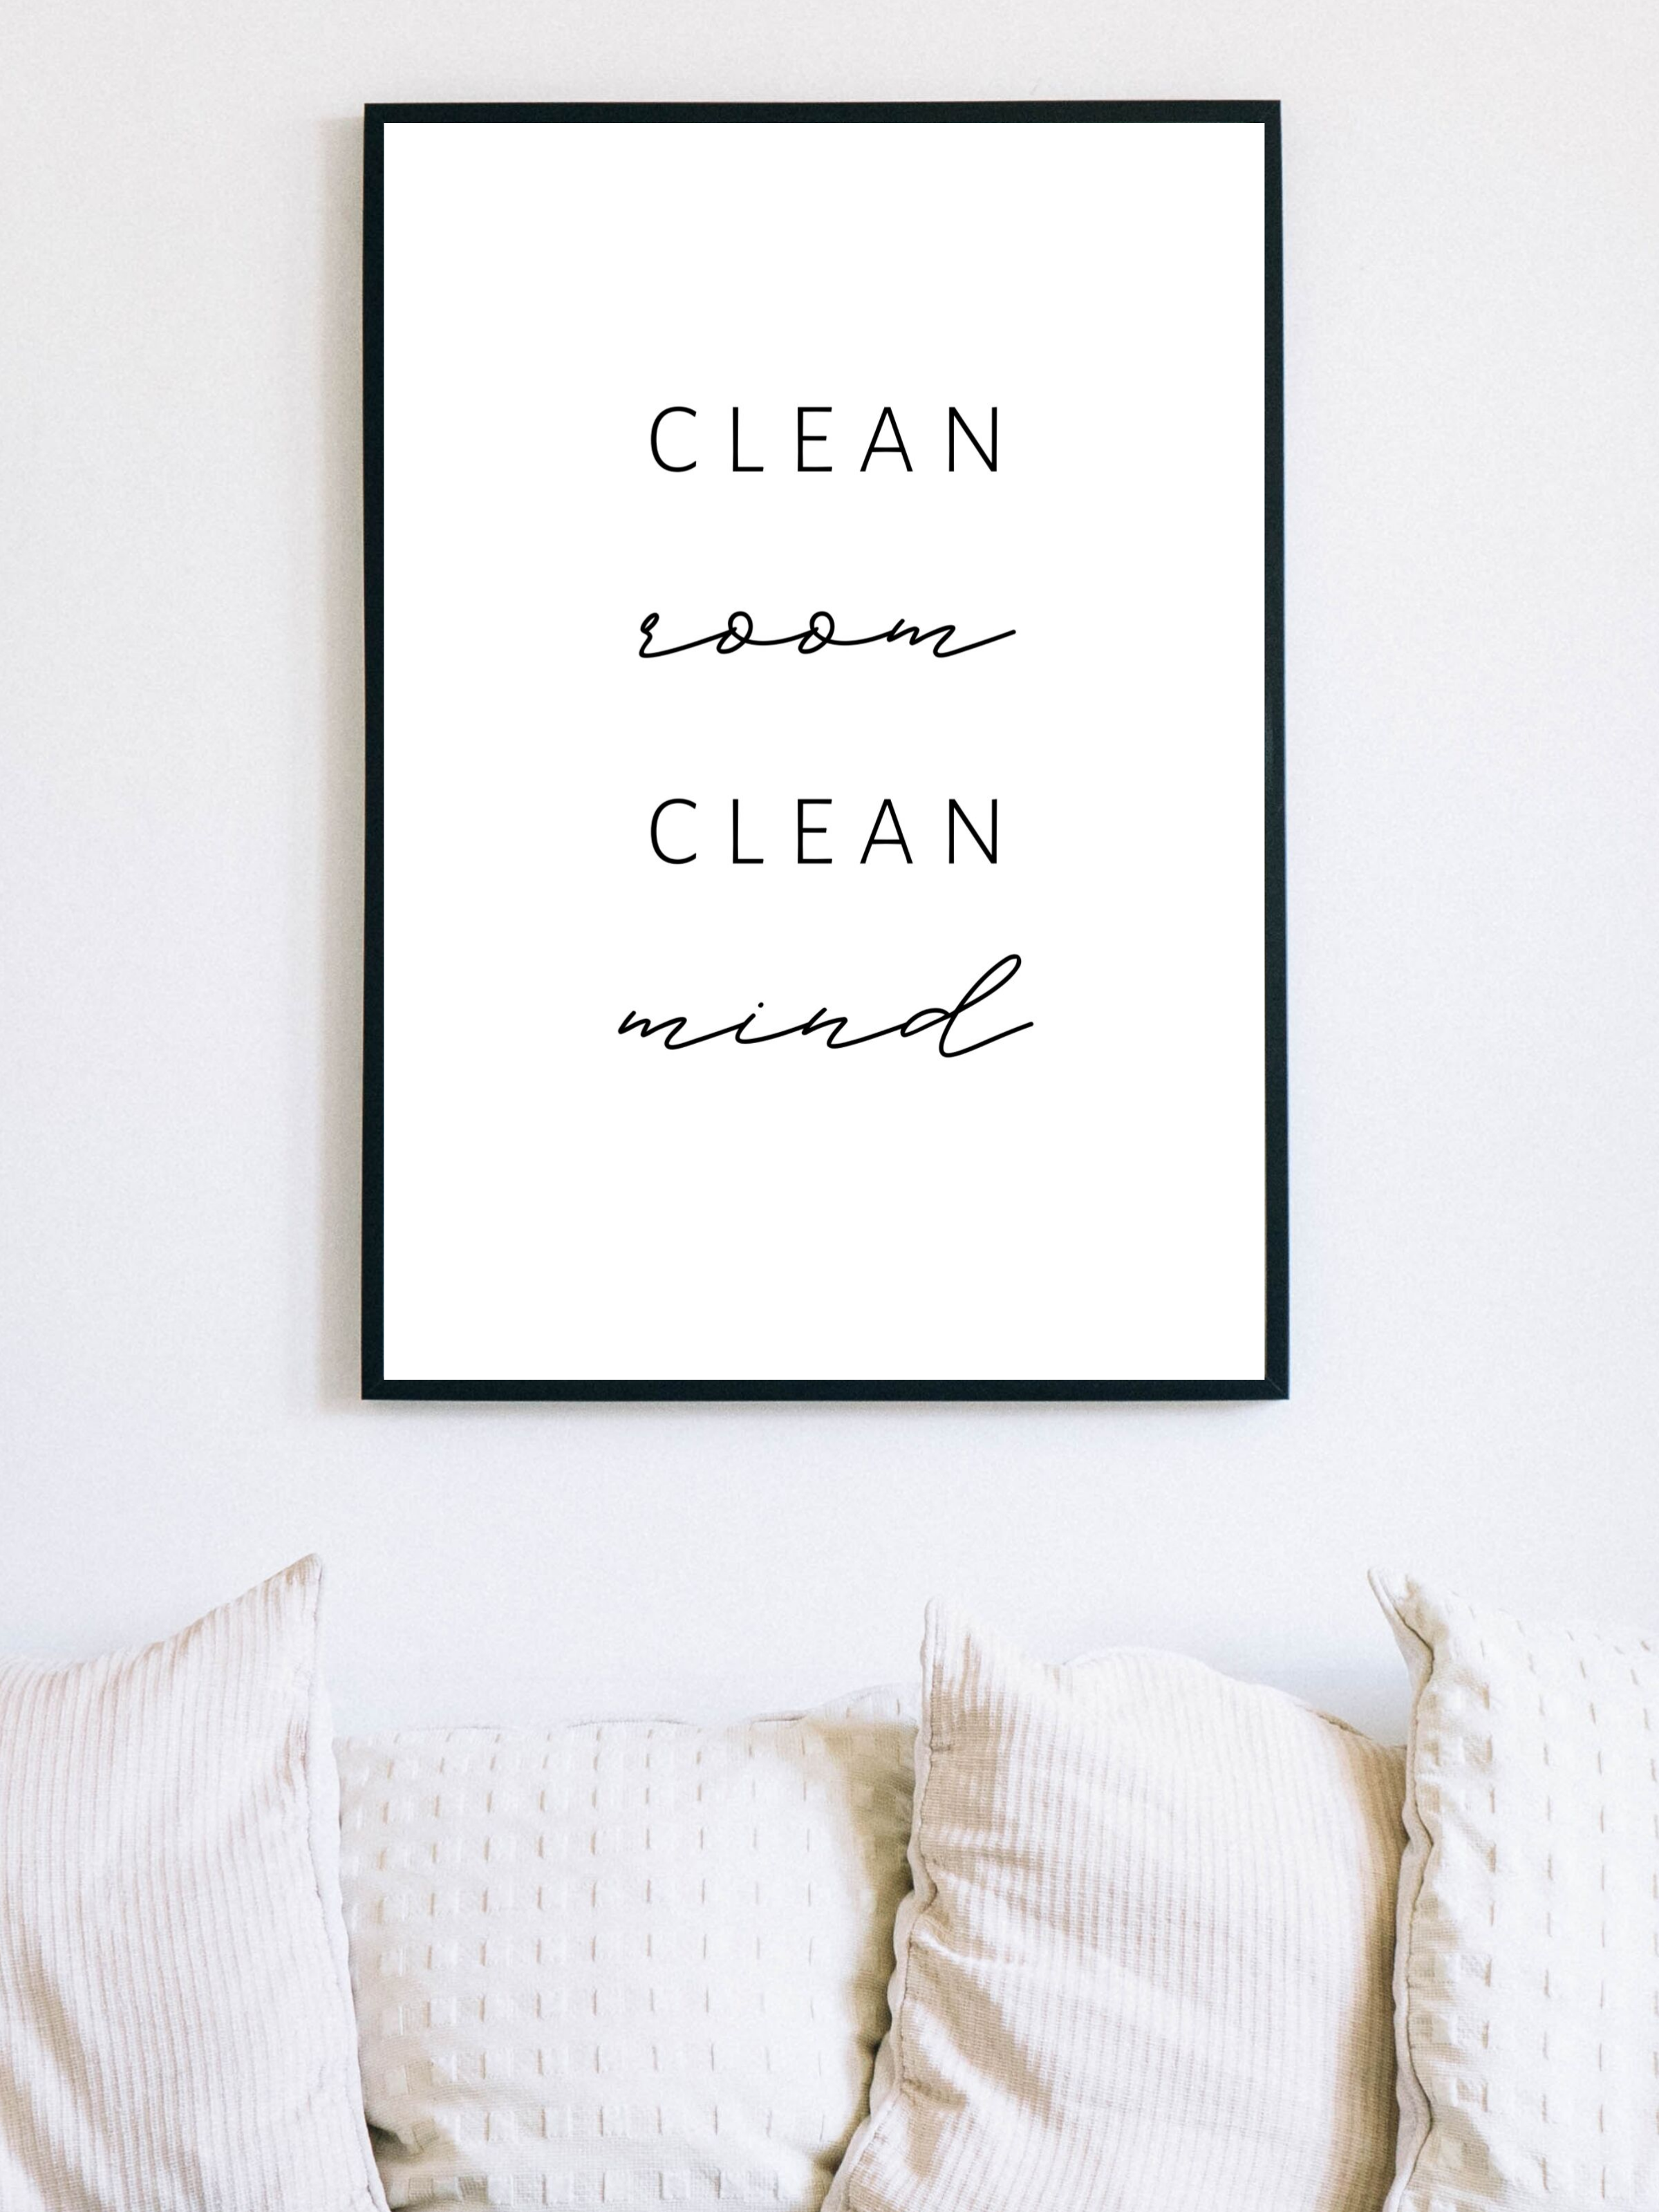 Clean Room Clean Mind Wall Art Printable Inspirational Saying Poster Motivational Quote Wall Art Minimalist Aesthetic Room Decor In 2020 Clean Room Wall Decor Quotes Inspirational Quotes Motivation